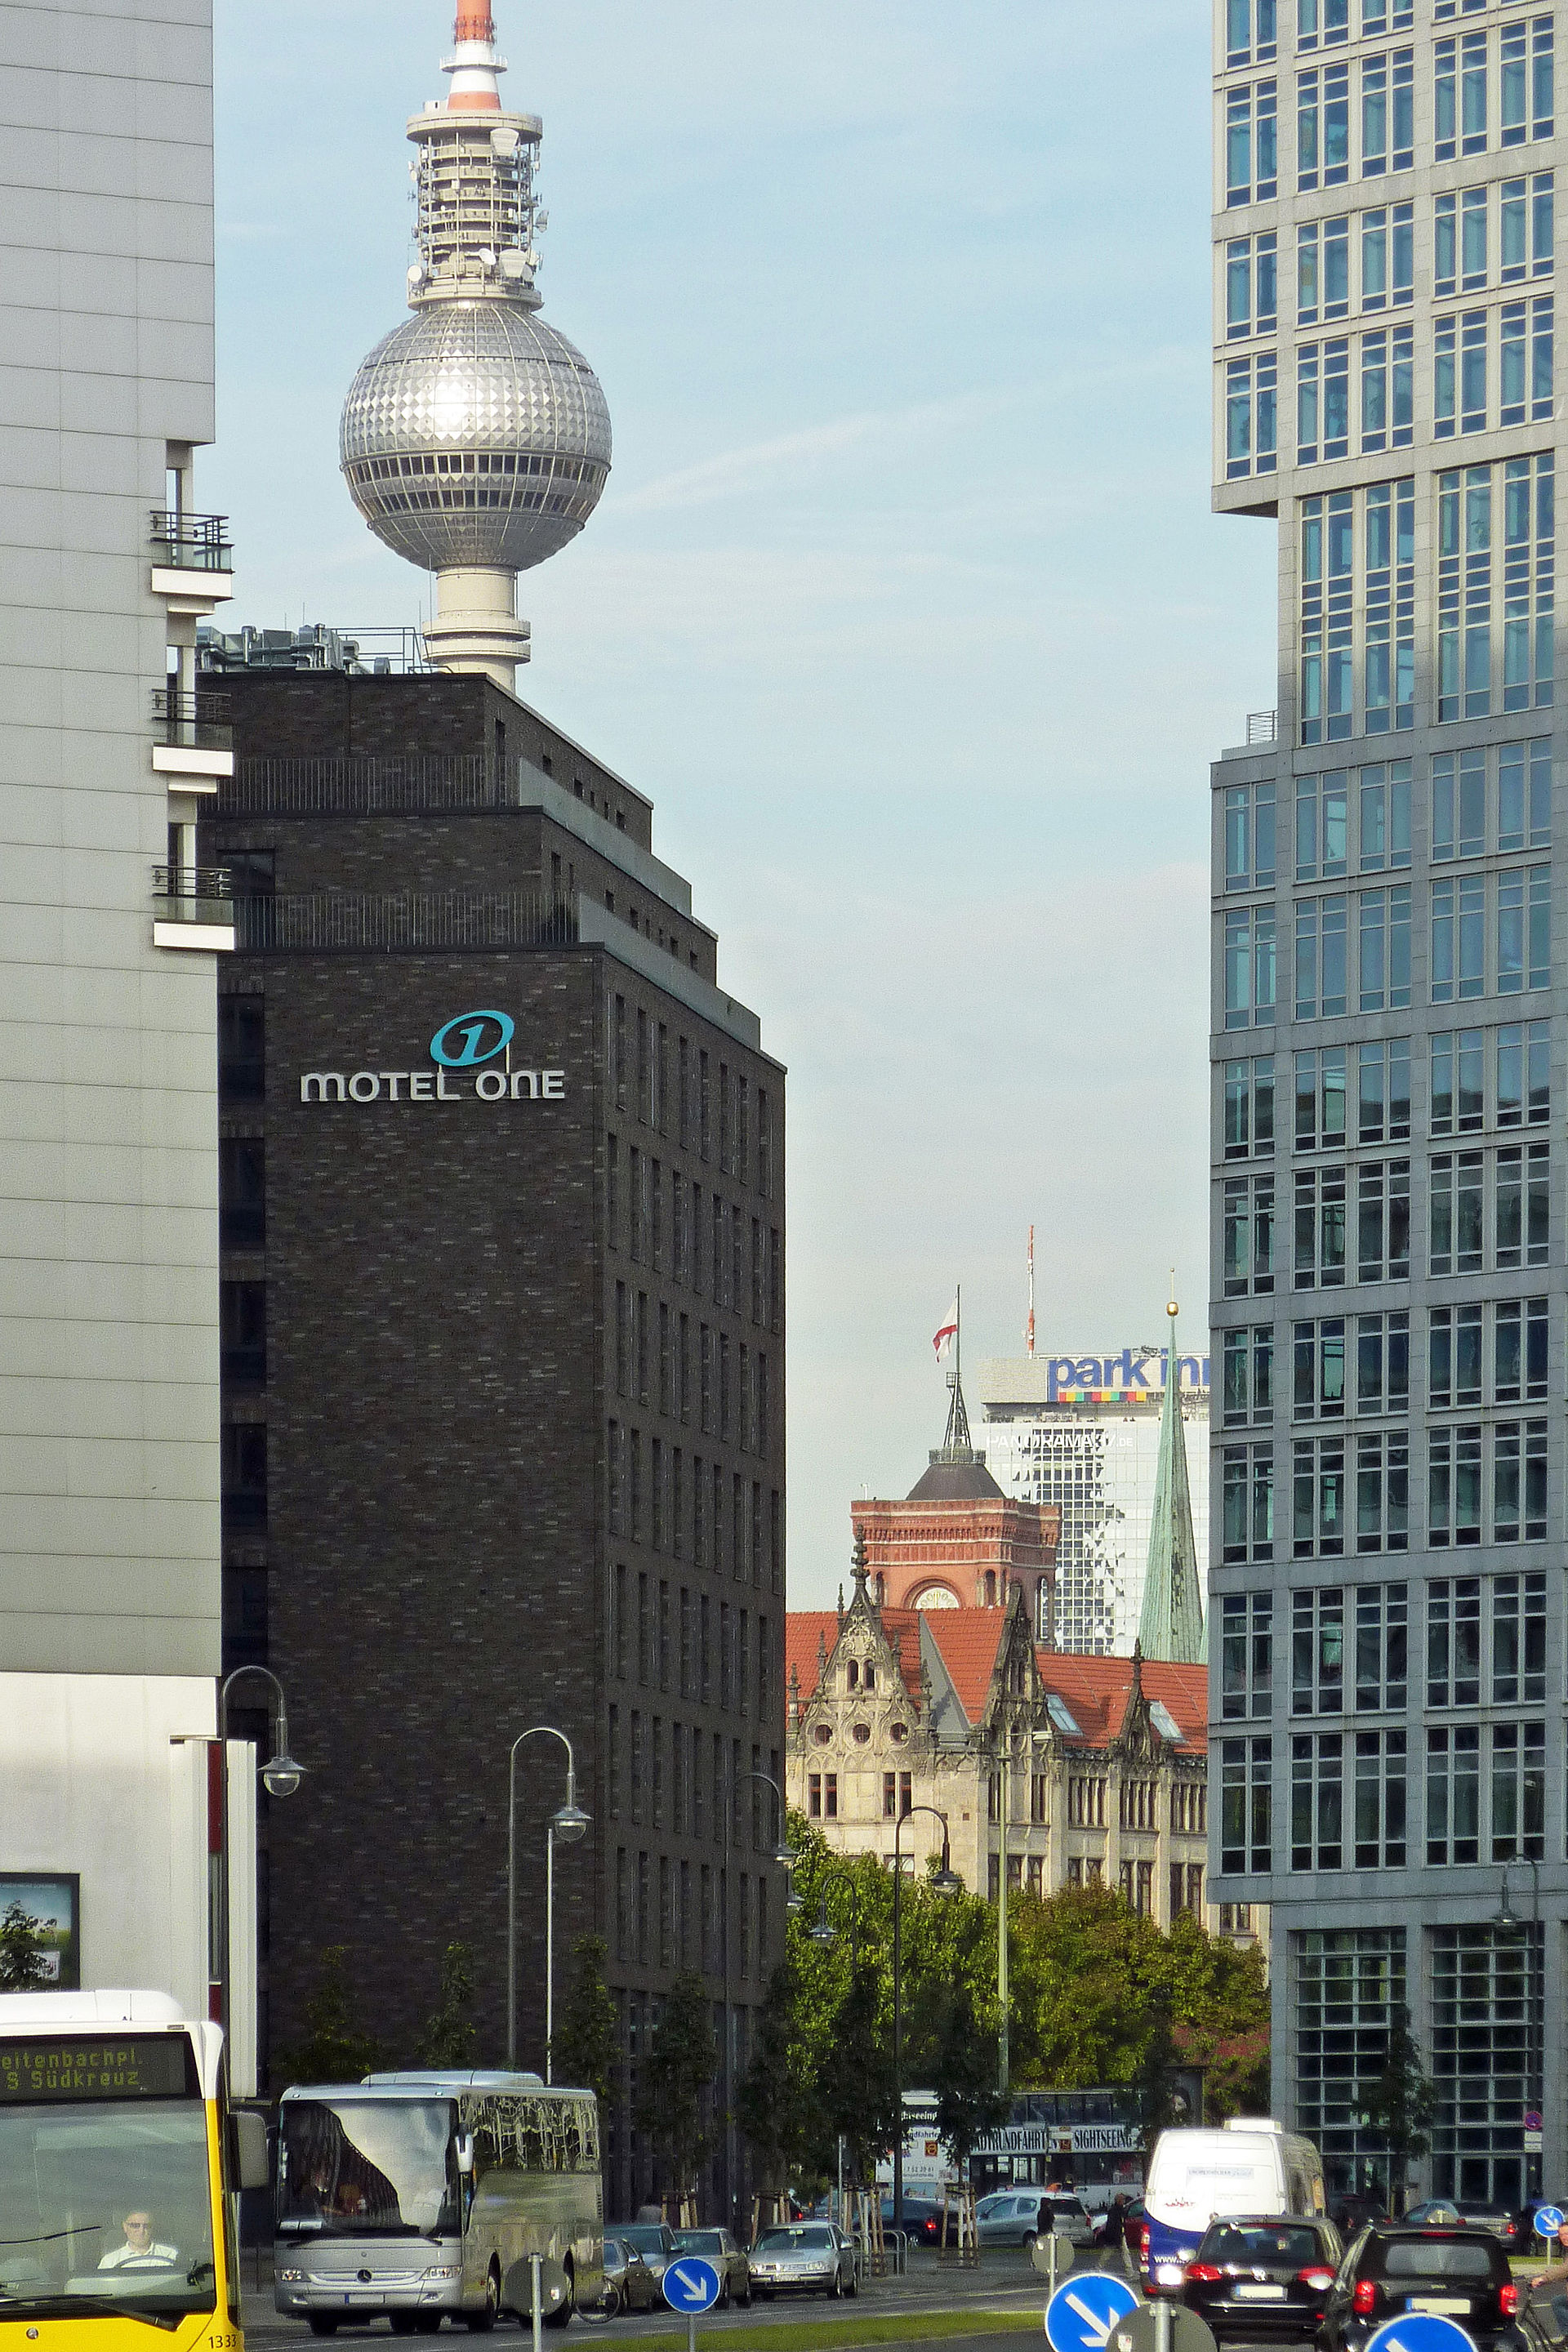 Motel One Berlin Ku Damm